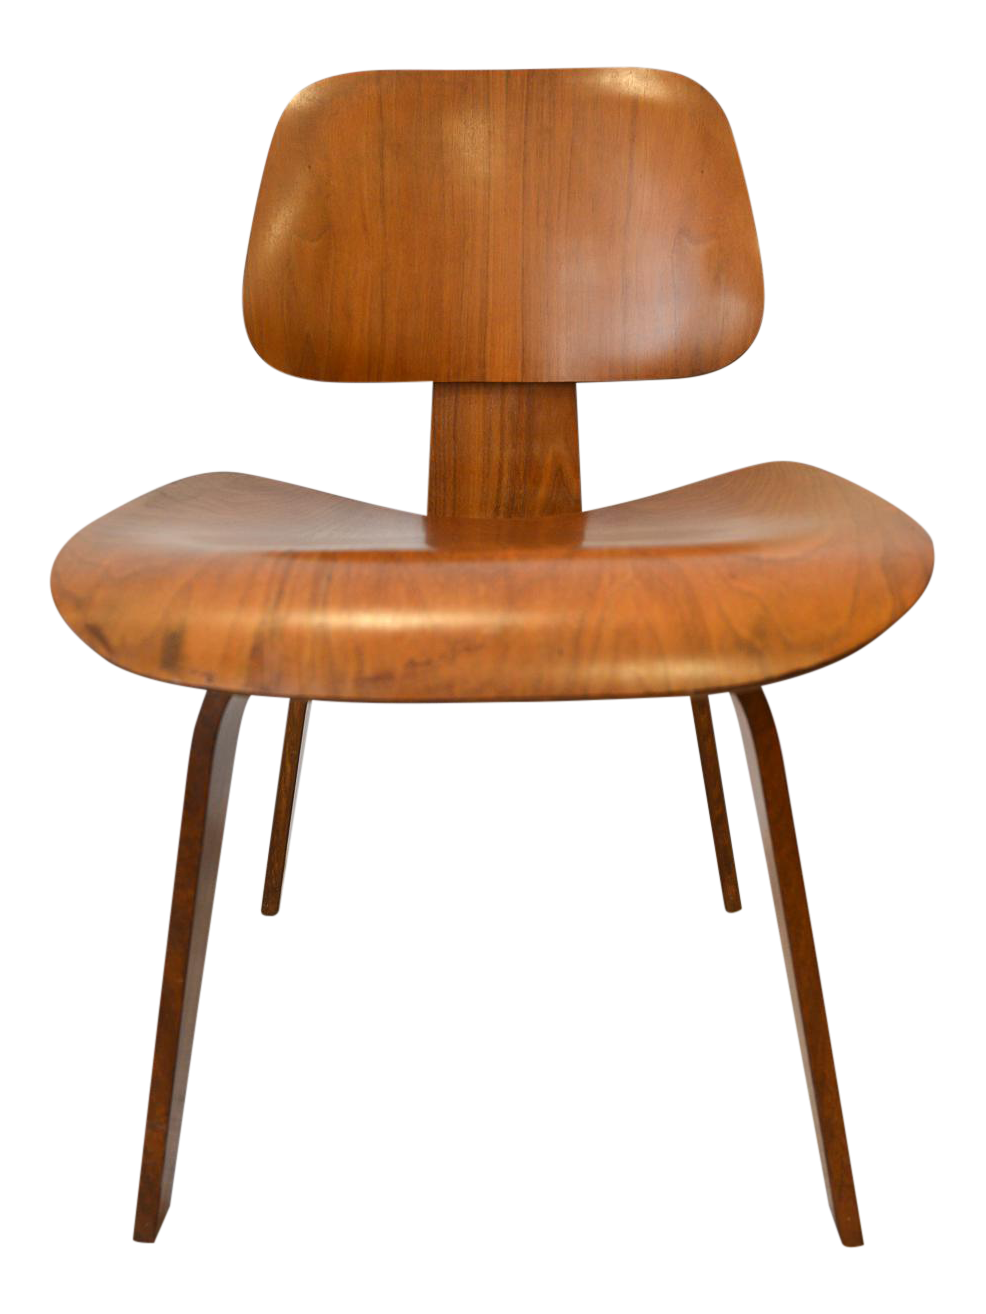 1970s Mid Century Moderm Eames DCW Molded Plywood Chair